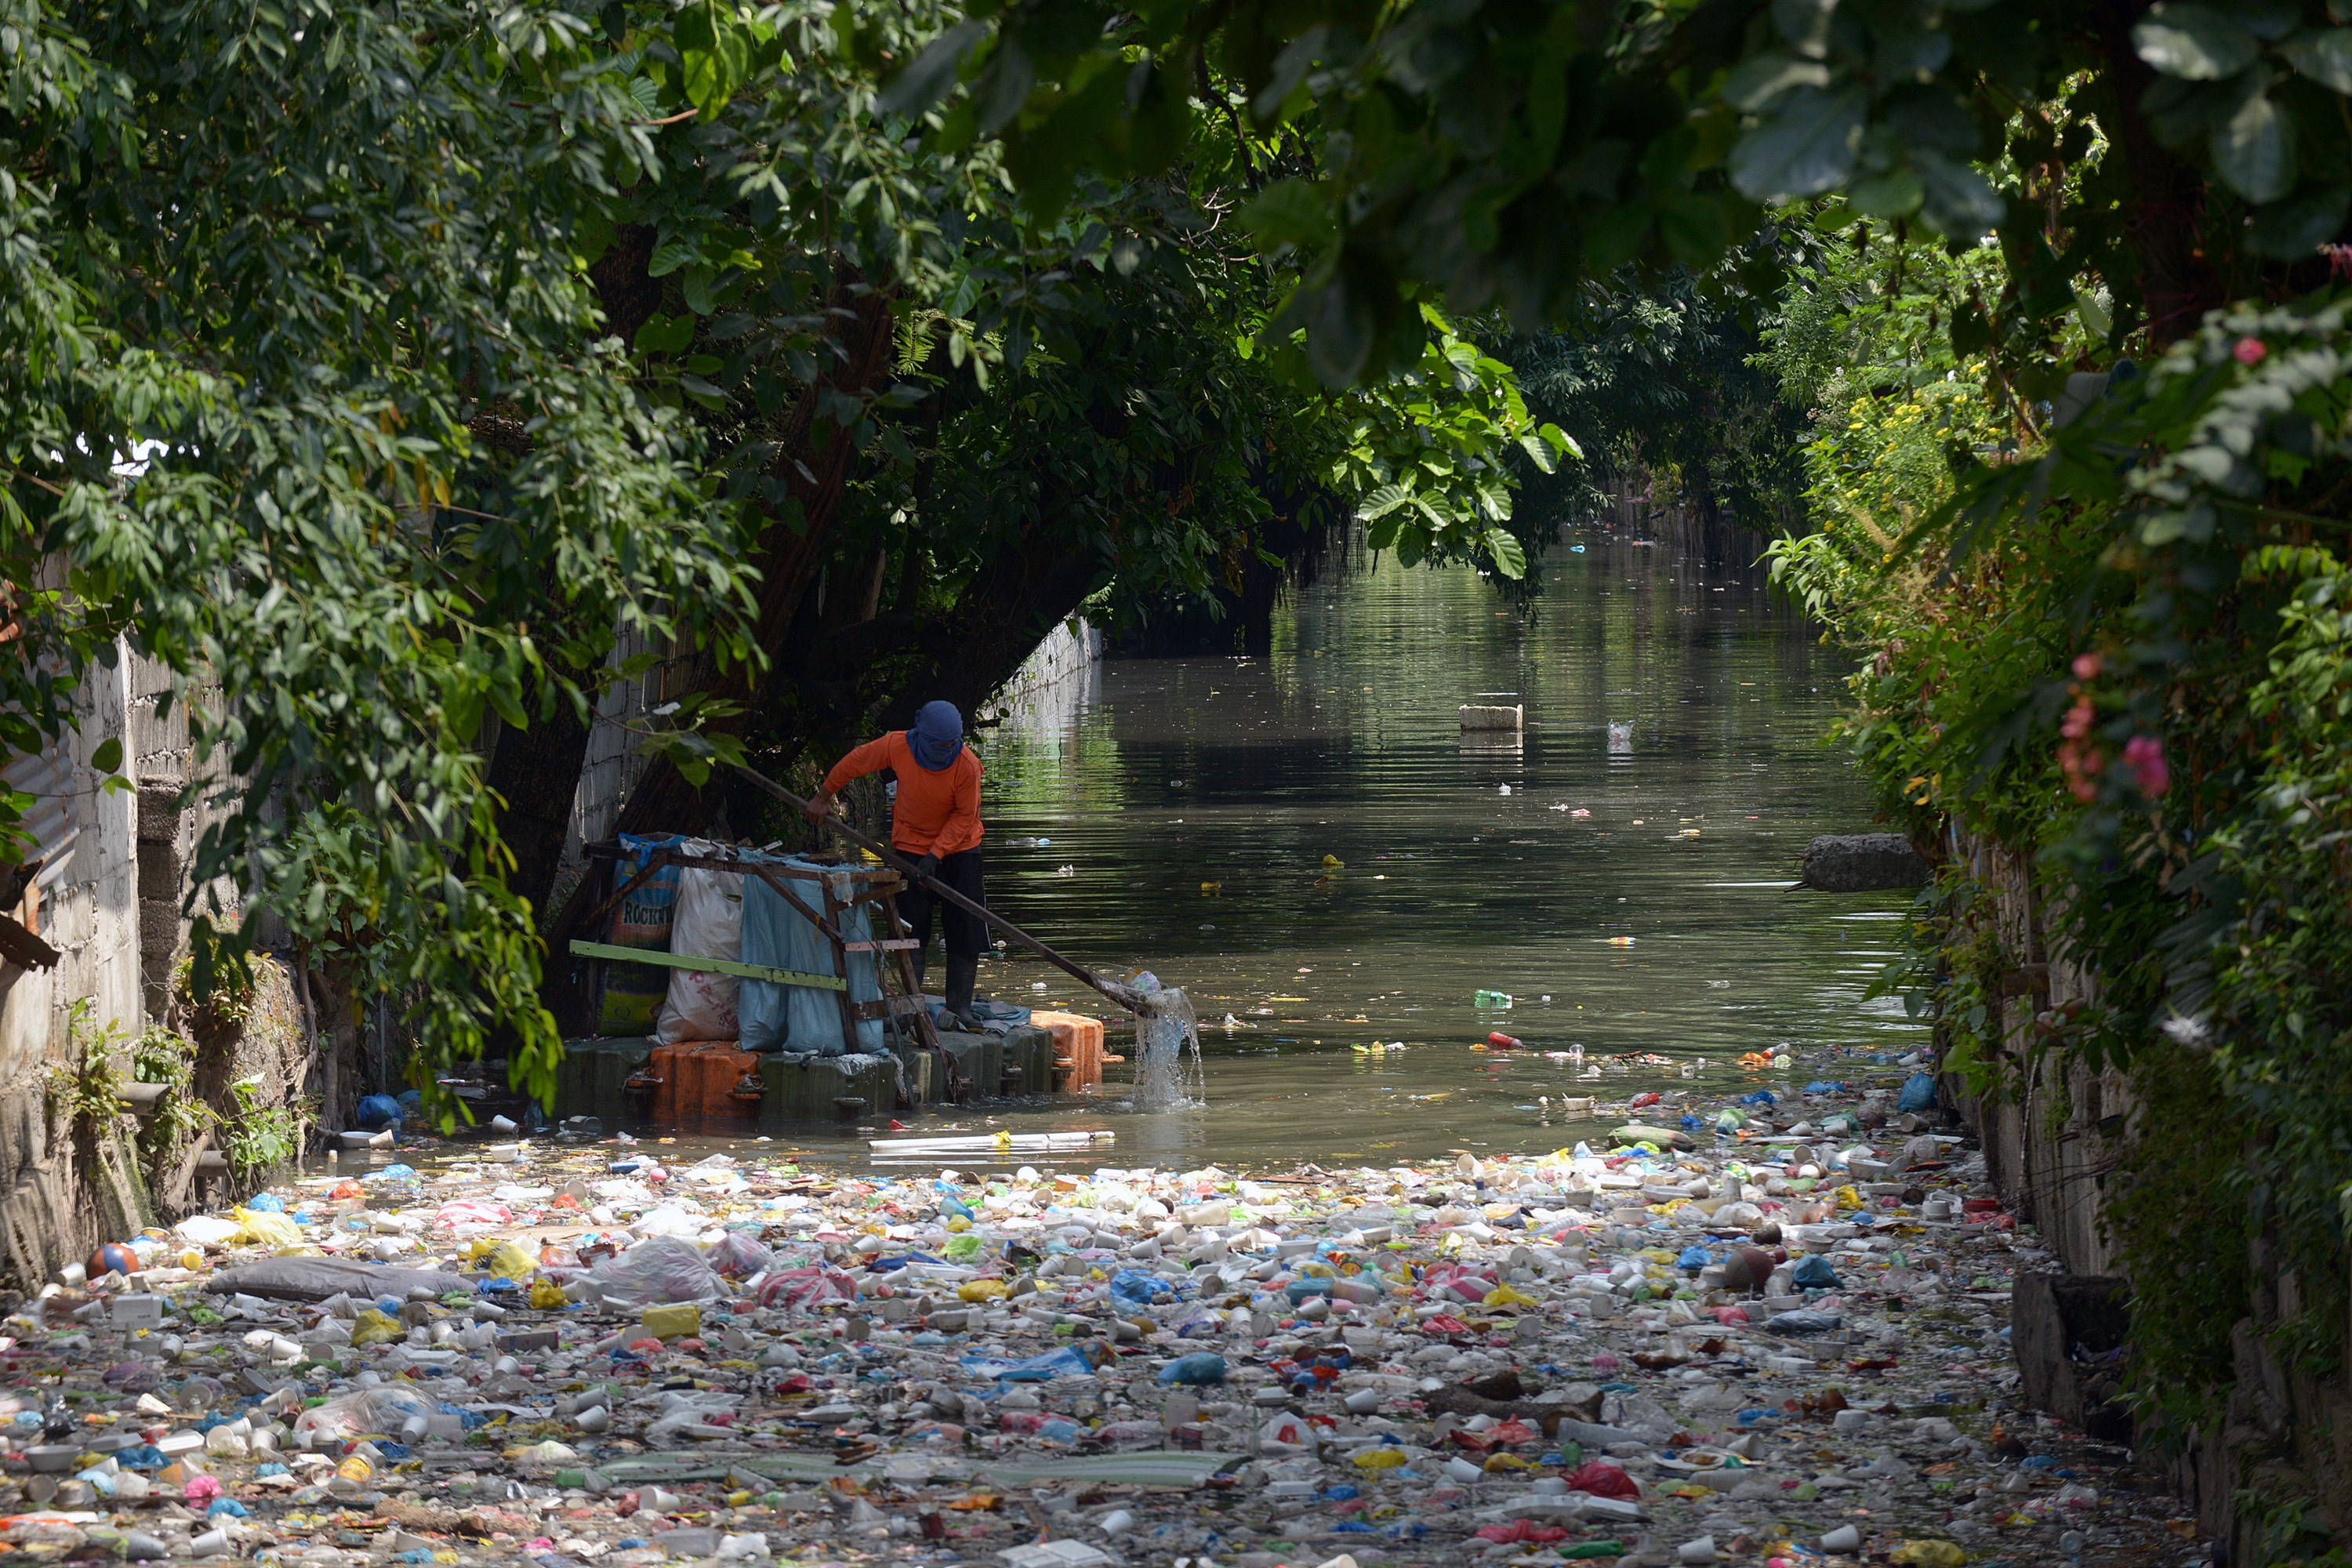 A cleanup volunteer scoops plastic waste at an open sewer in Manila on May 4, 2015. Nongovernmental environmental groups are calling for national legislation to prevent plastic waste that clog waterways